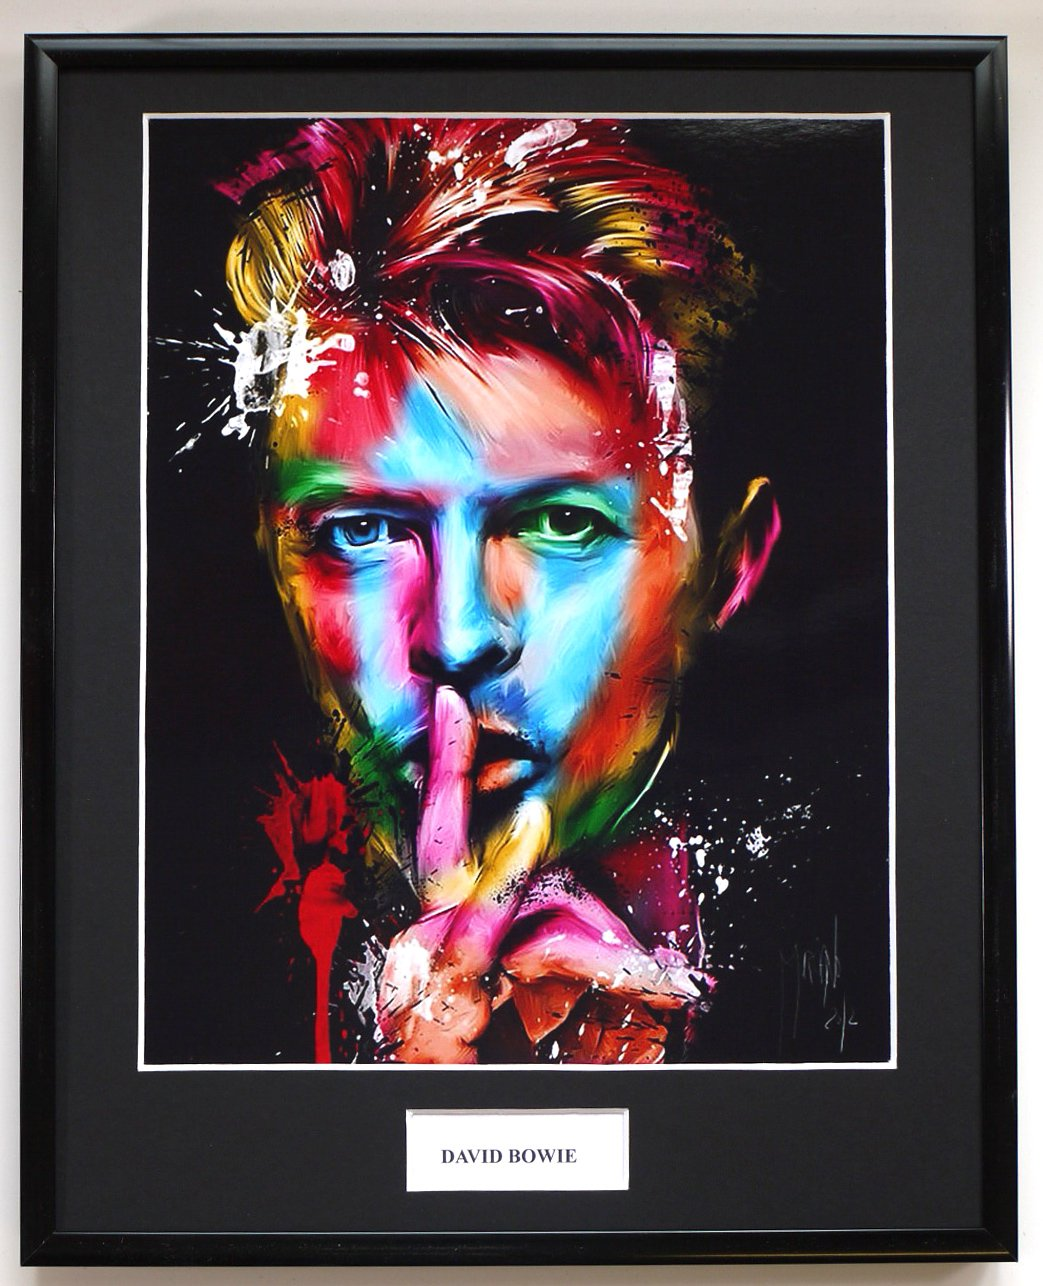 DAVID BOWIE/FRAMED PHOTO EC